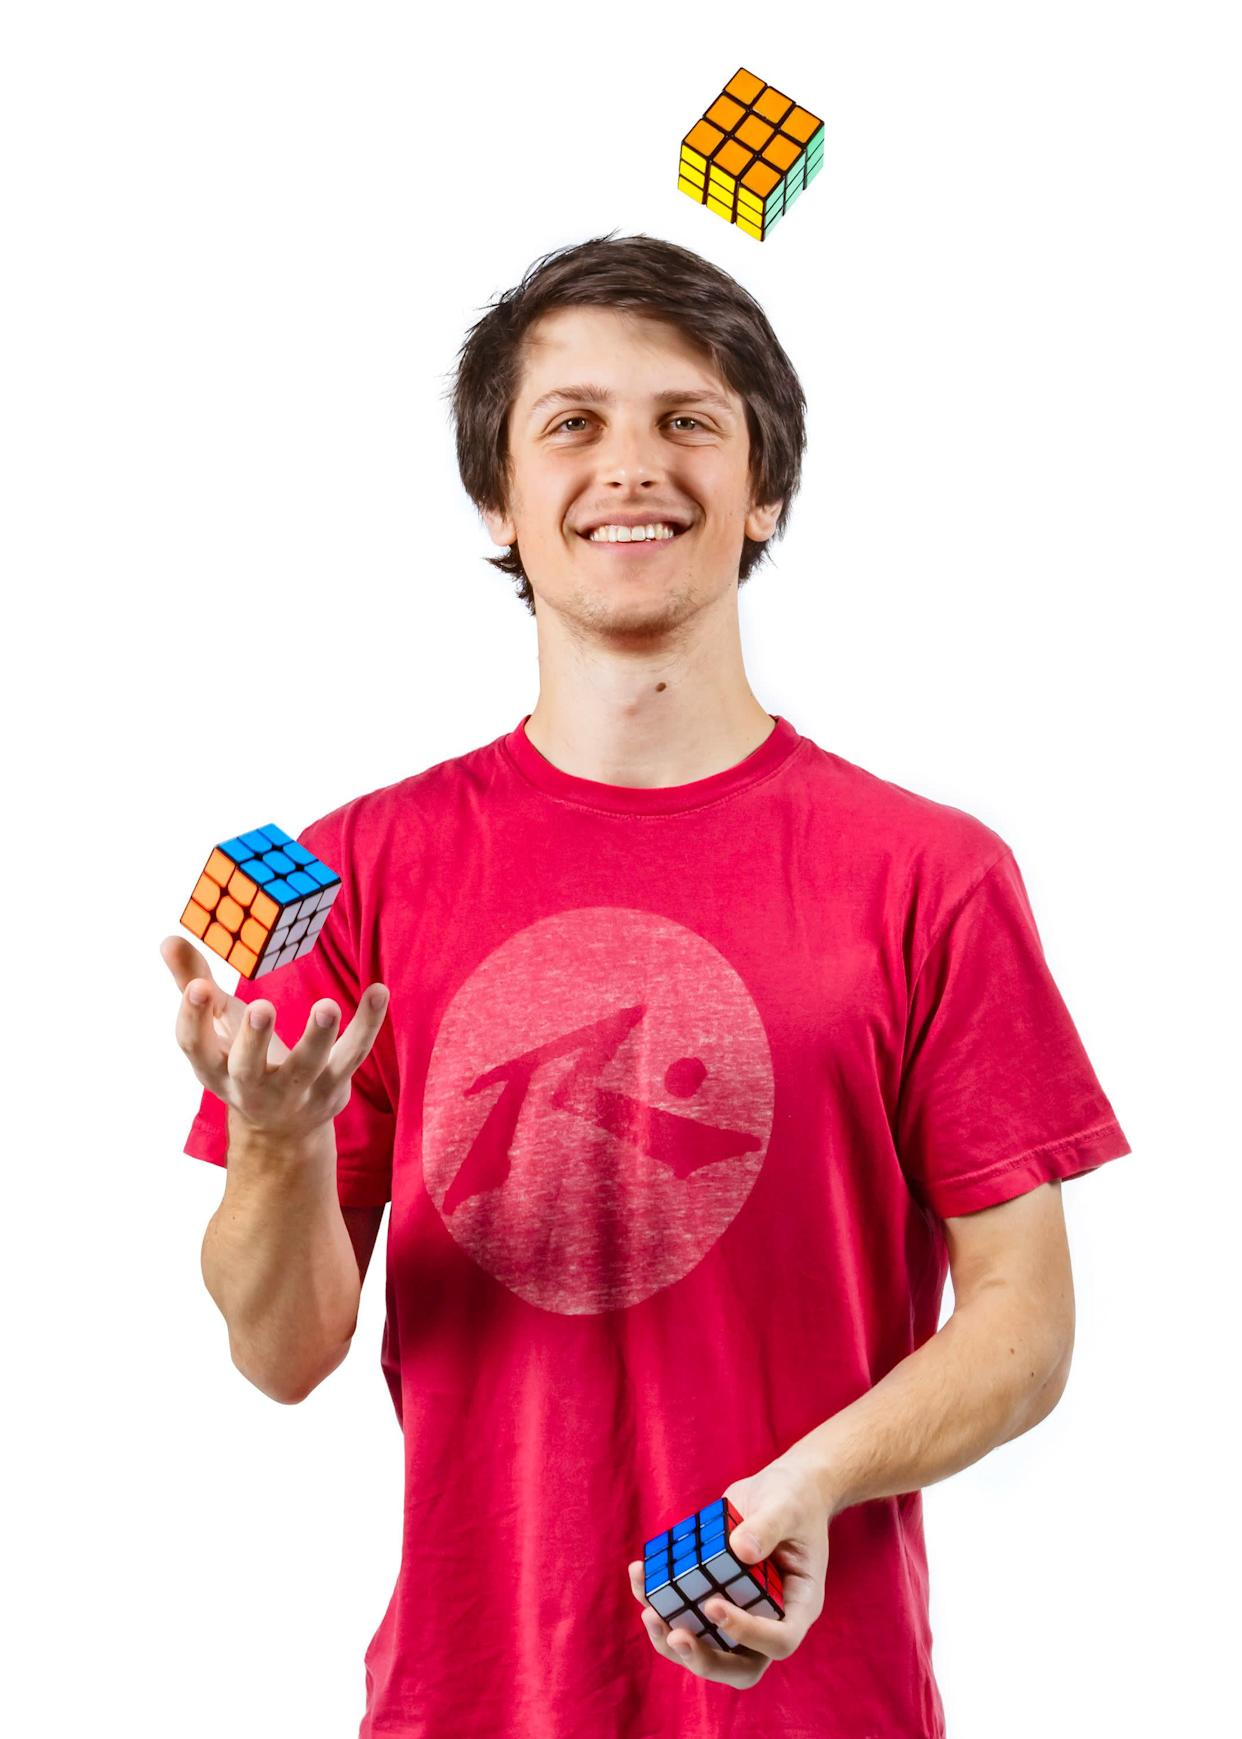 Feliks Zemdegsholds numerous world records involvingthe Rubik's Cube. The student from Melbourne, Australia, can solve the cube in just 4.73 seconds.